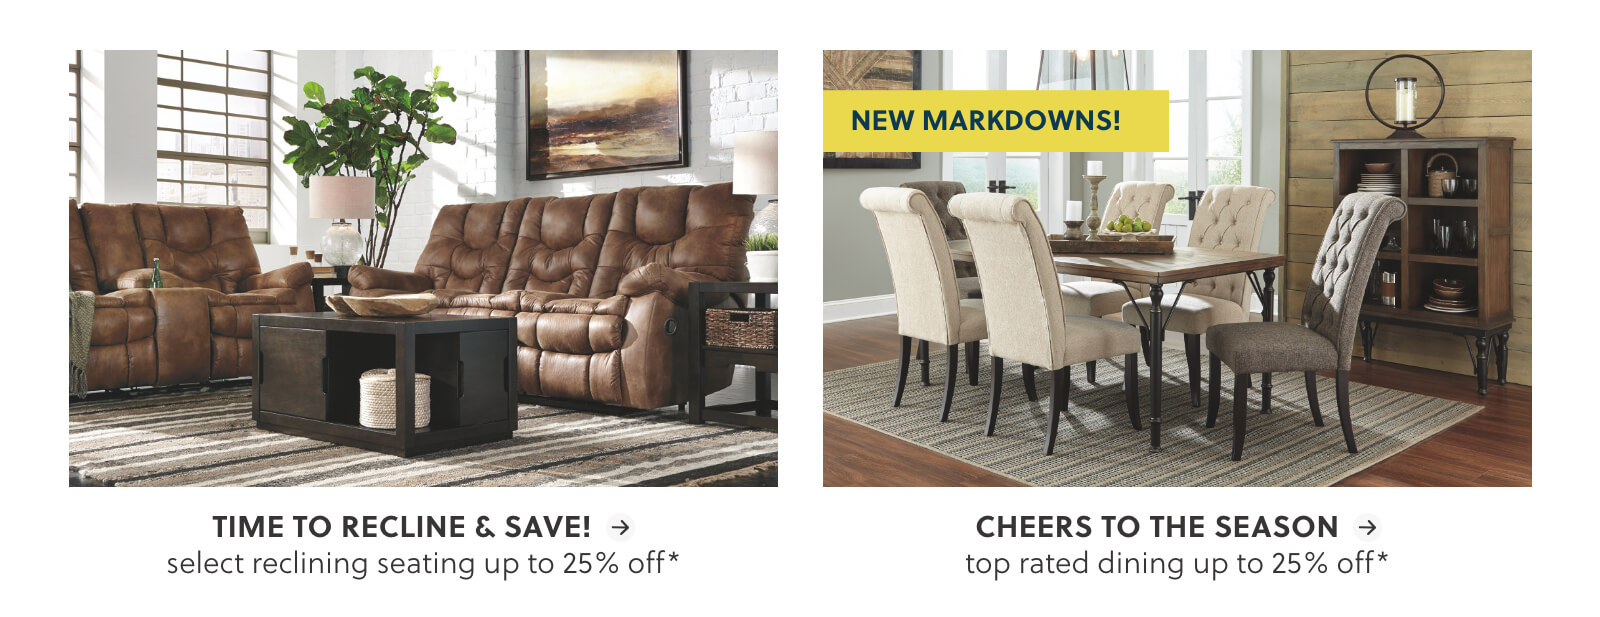 Recliners on Sale, Top Rated Dining Tables